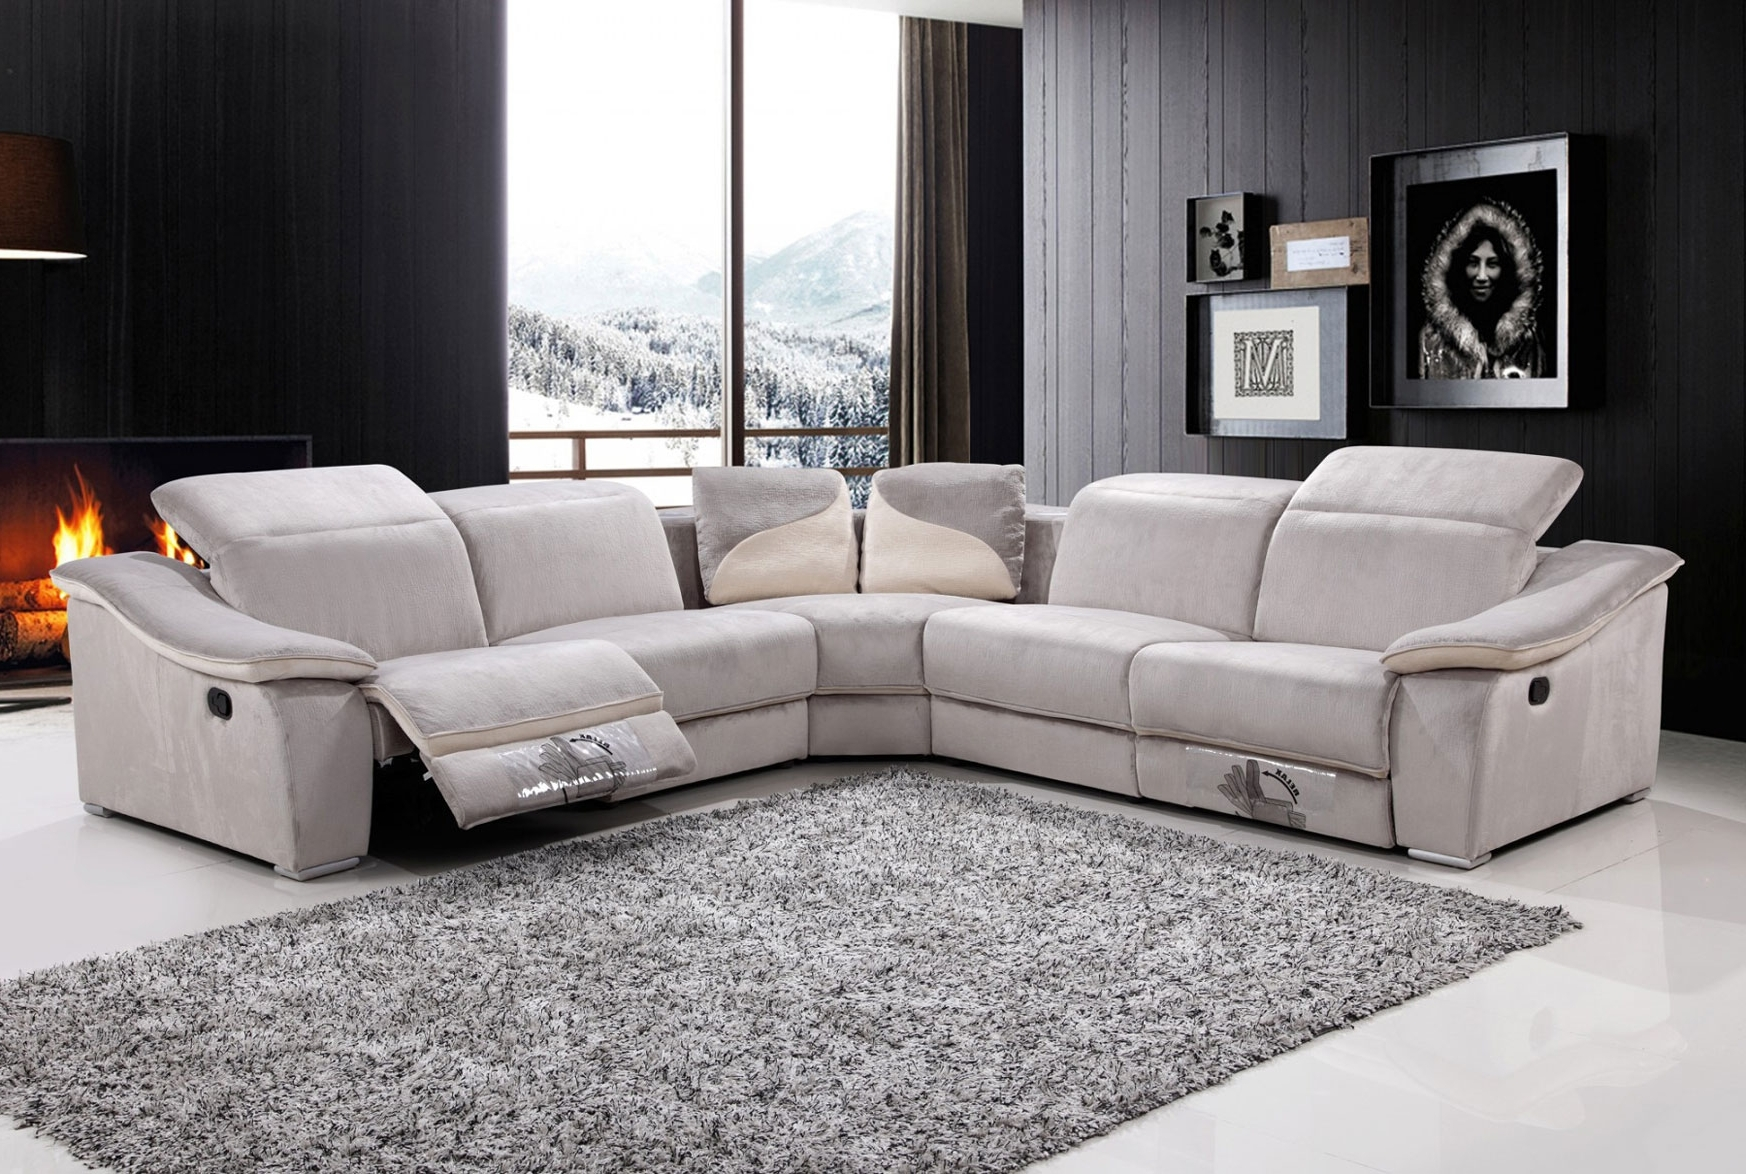 Latest Austin Sectional Sofas Regarding Sofa Sectional Sofas Austin Tx Modern Cheap Leather Couches Photos (View 11 of 20)